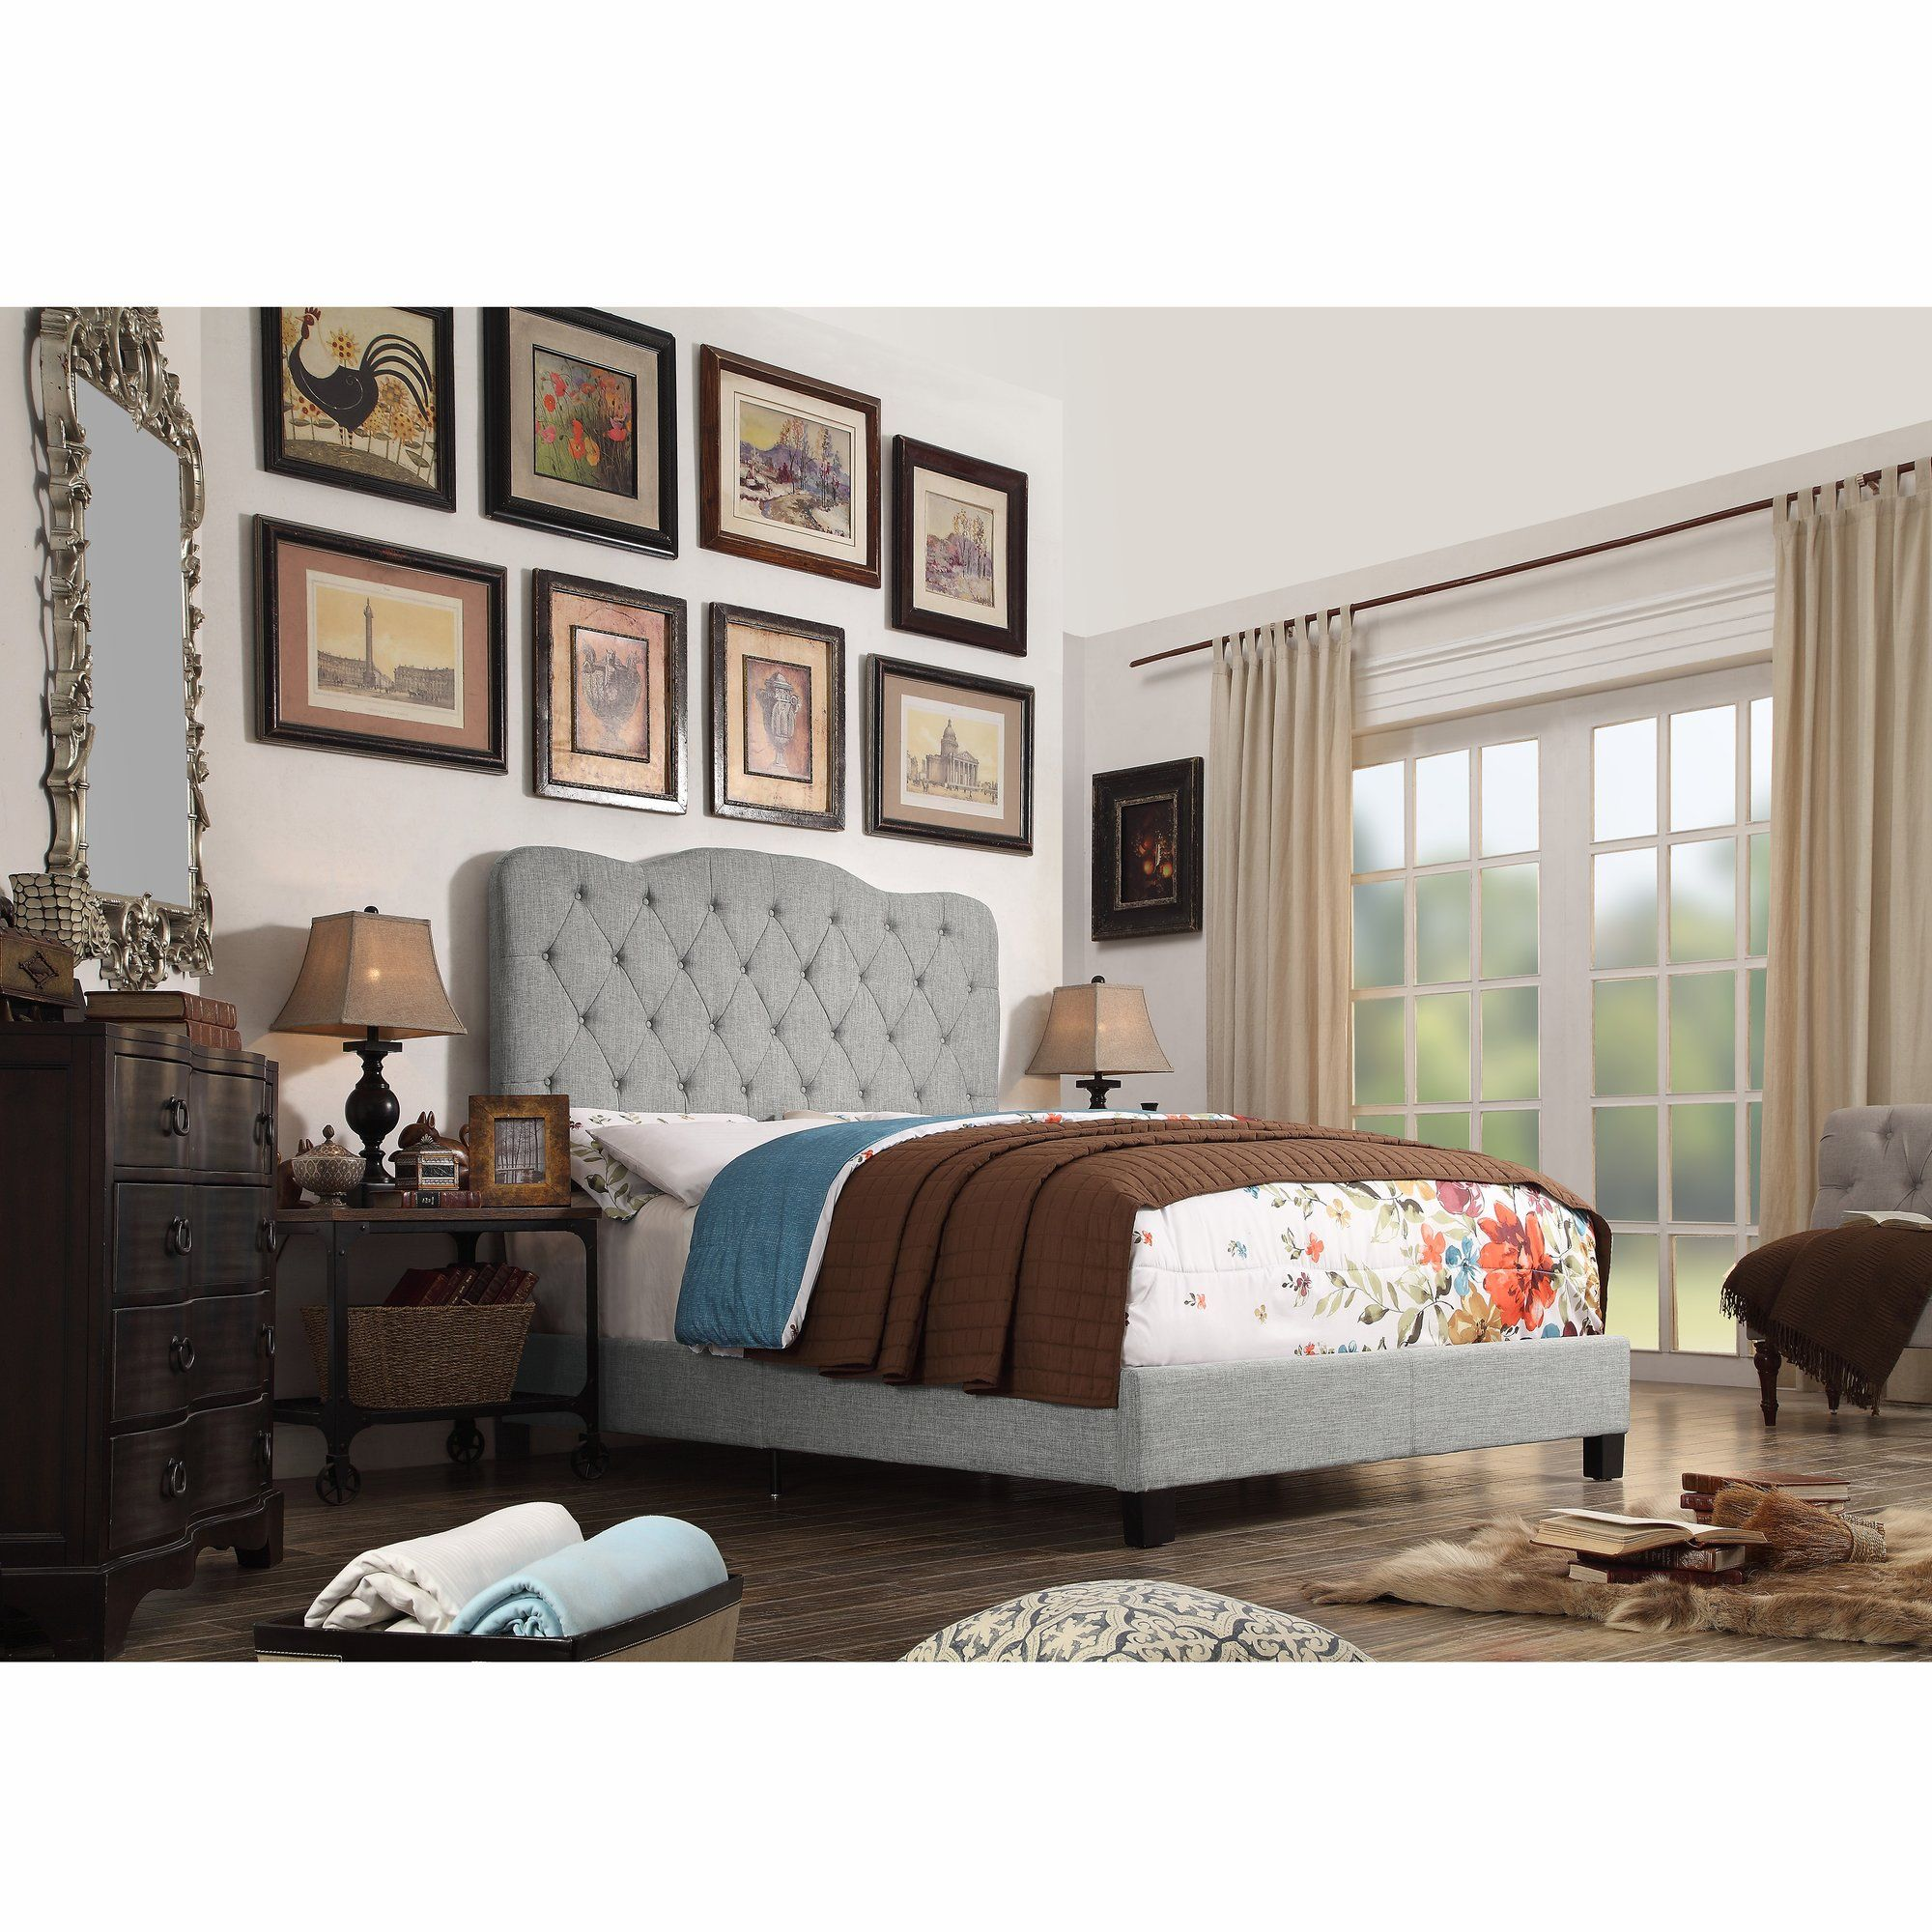 Customer Image Zoomed Tufted upholstered bed